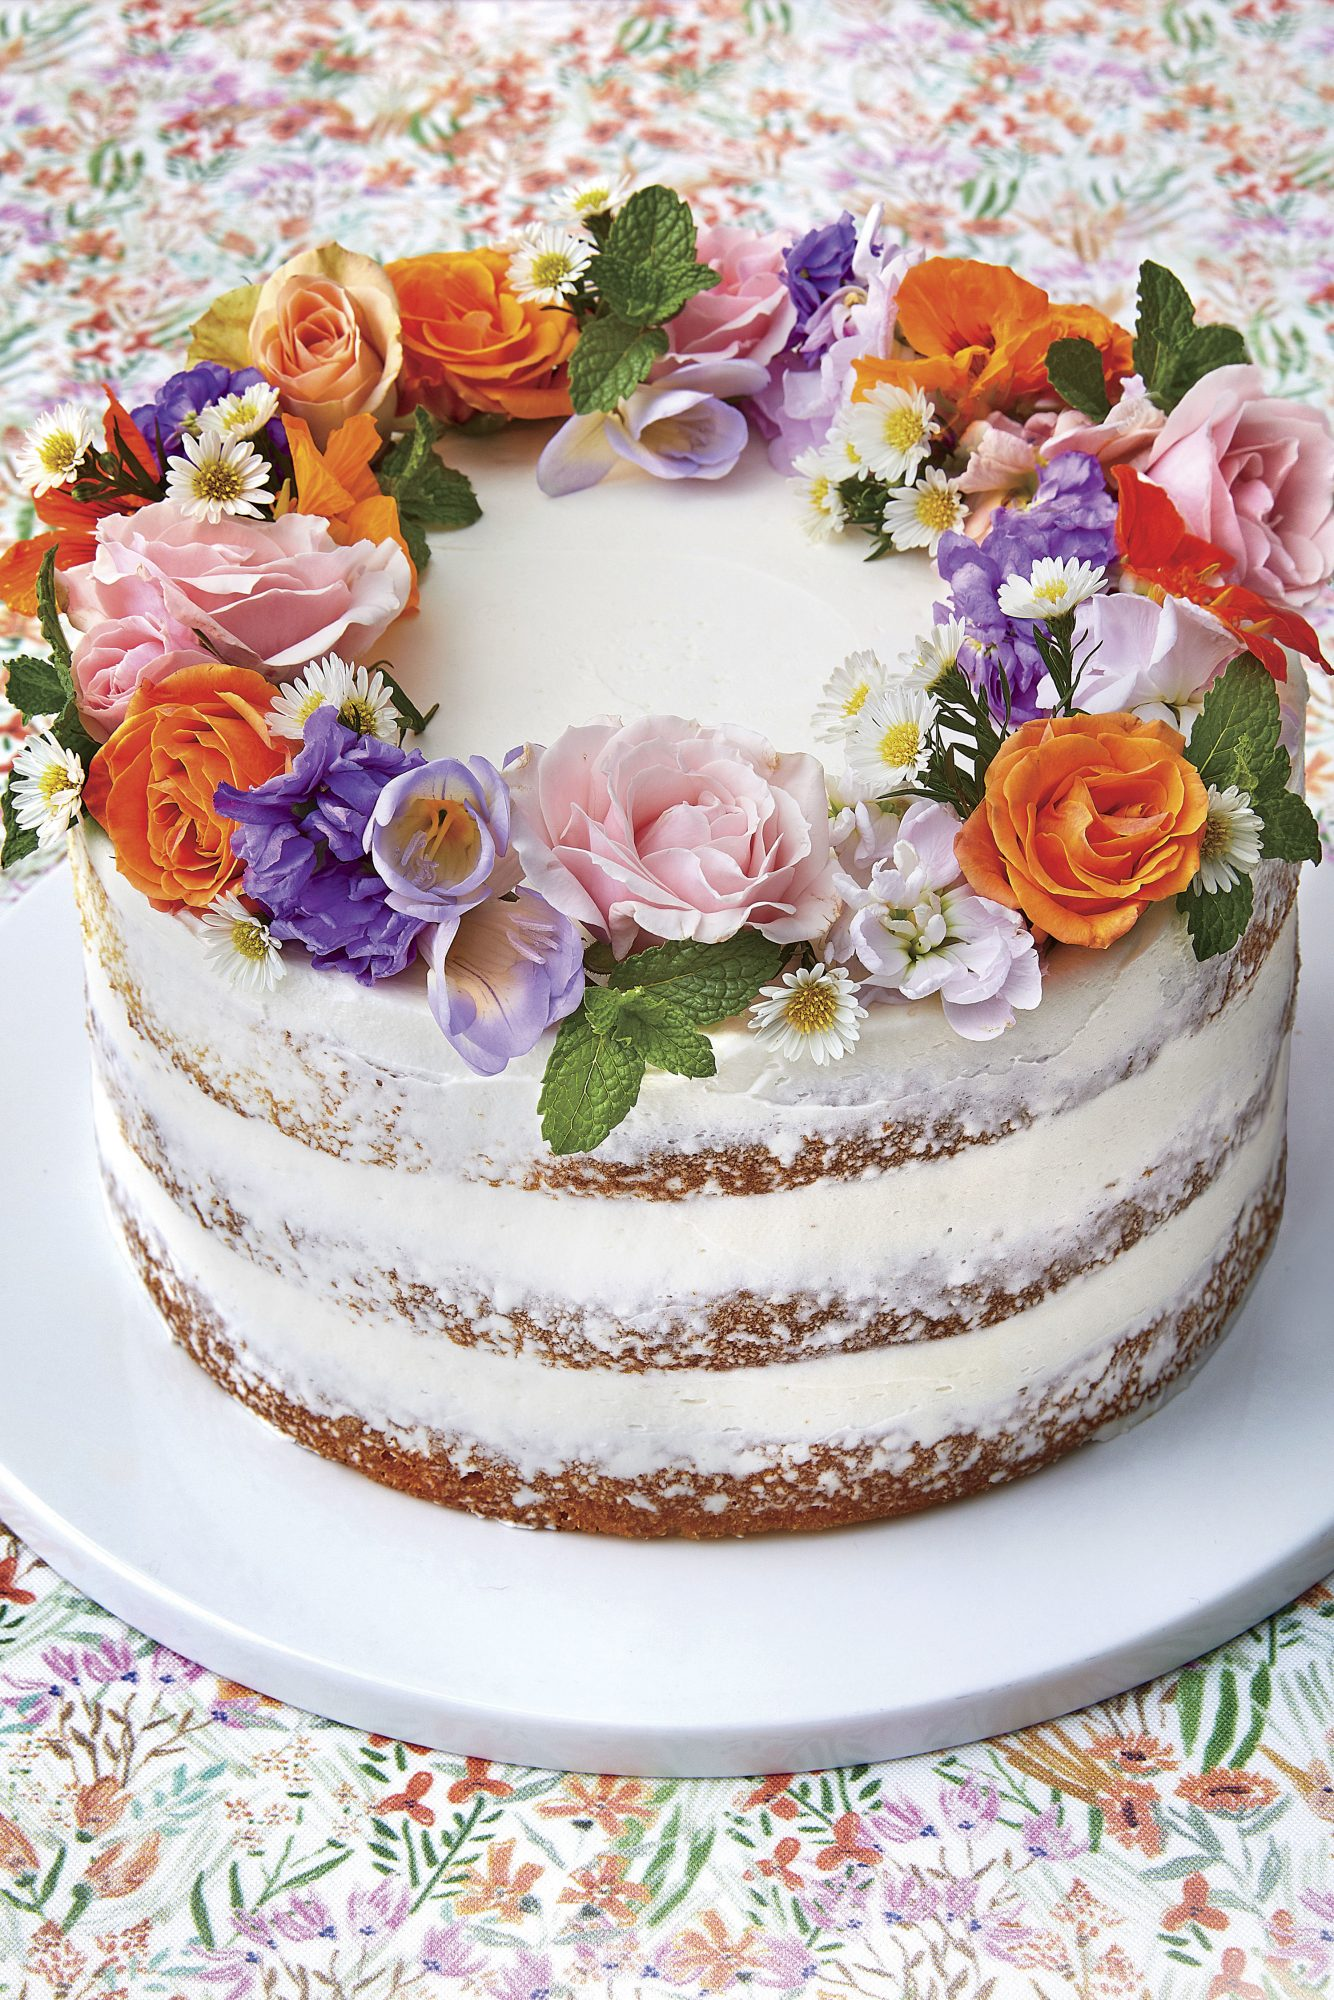 Lemon Naked Cake with Flower Crown